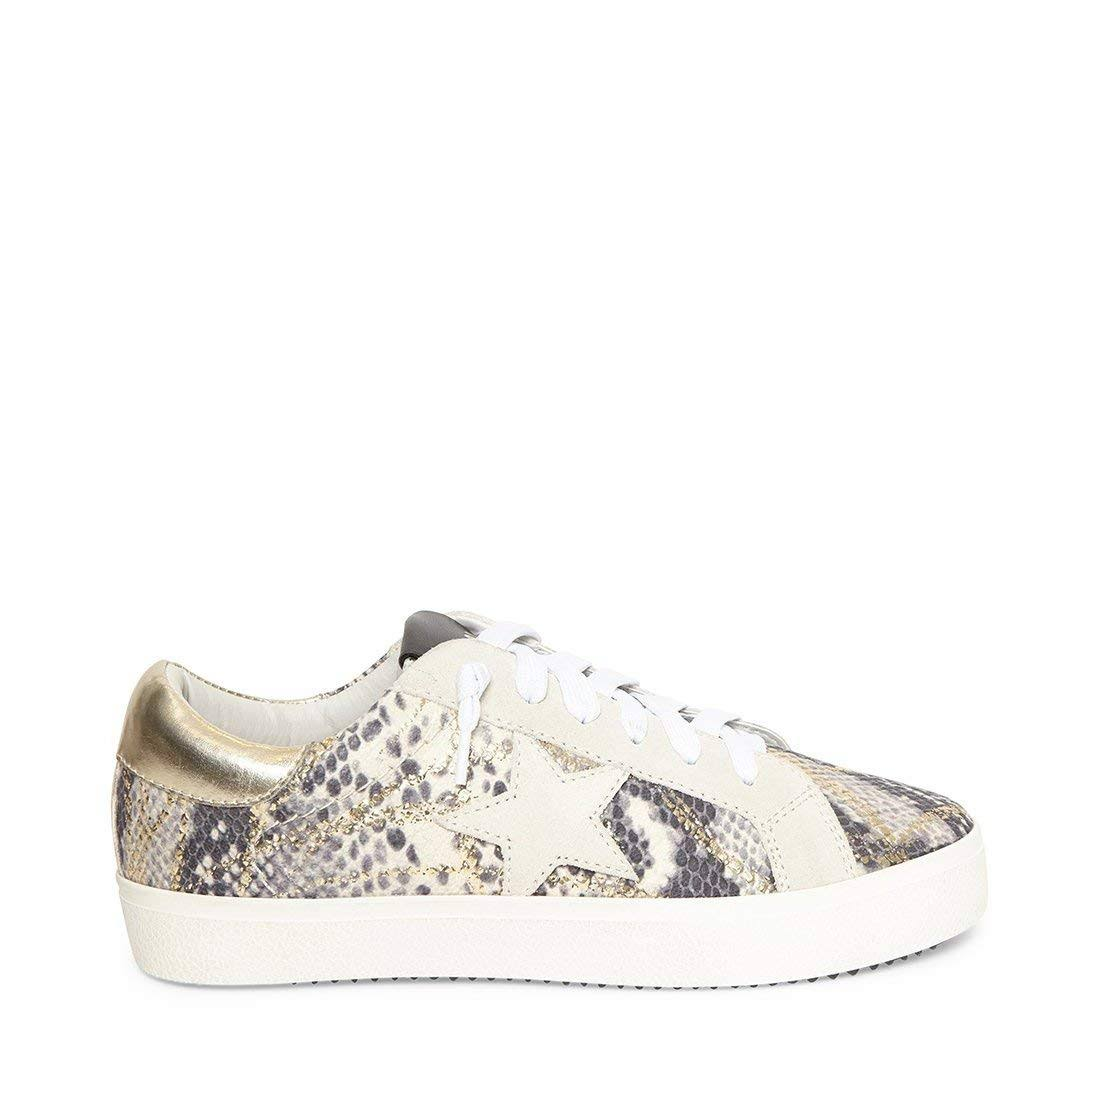 Steve Madden Philosophy Multi Star Print Sneakers - Gold Snake 8.5M